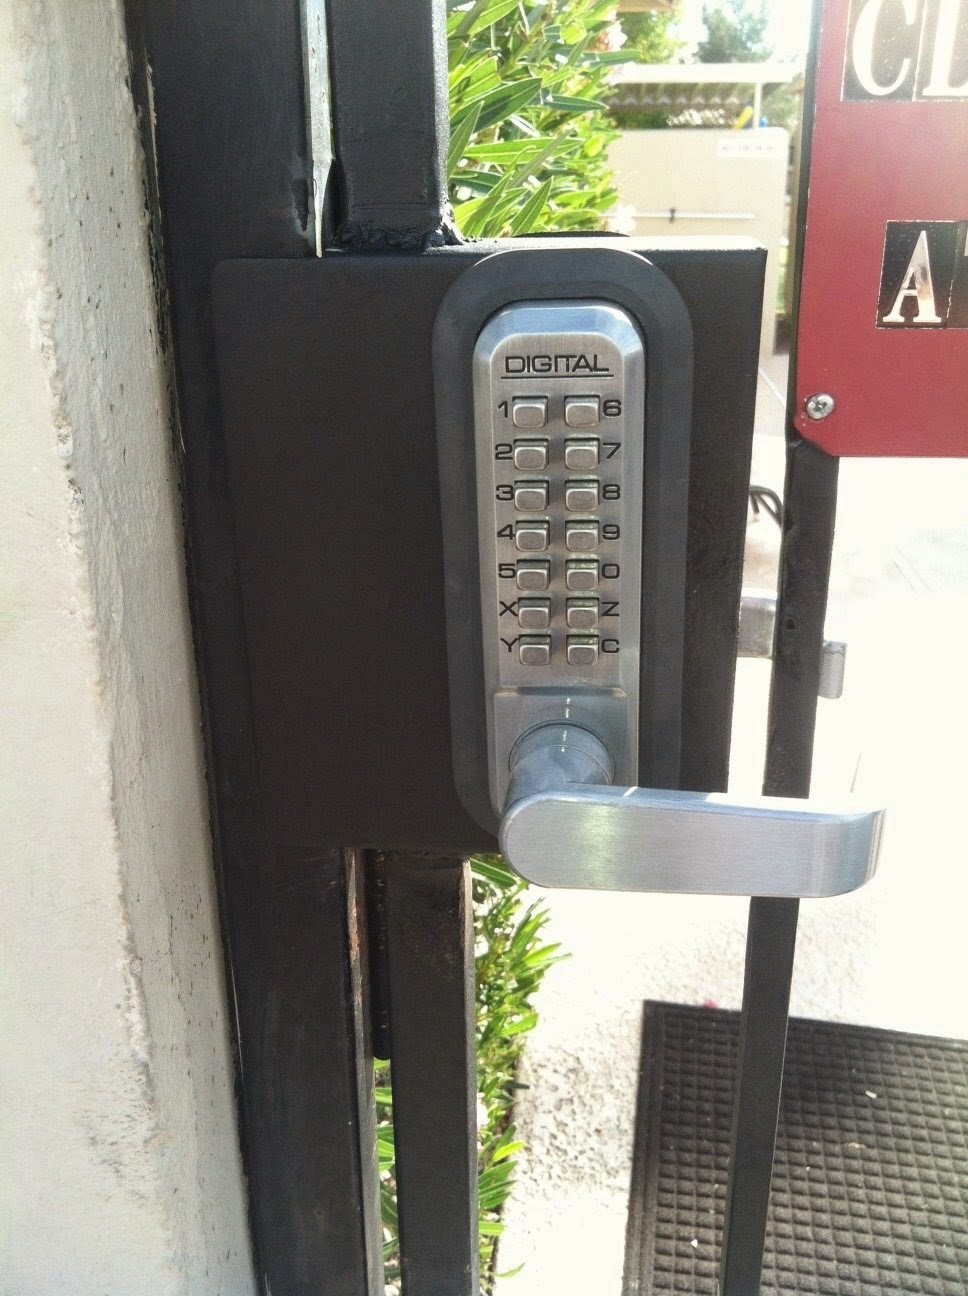 Pool Gate HOA Code Locks